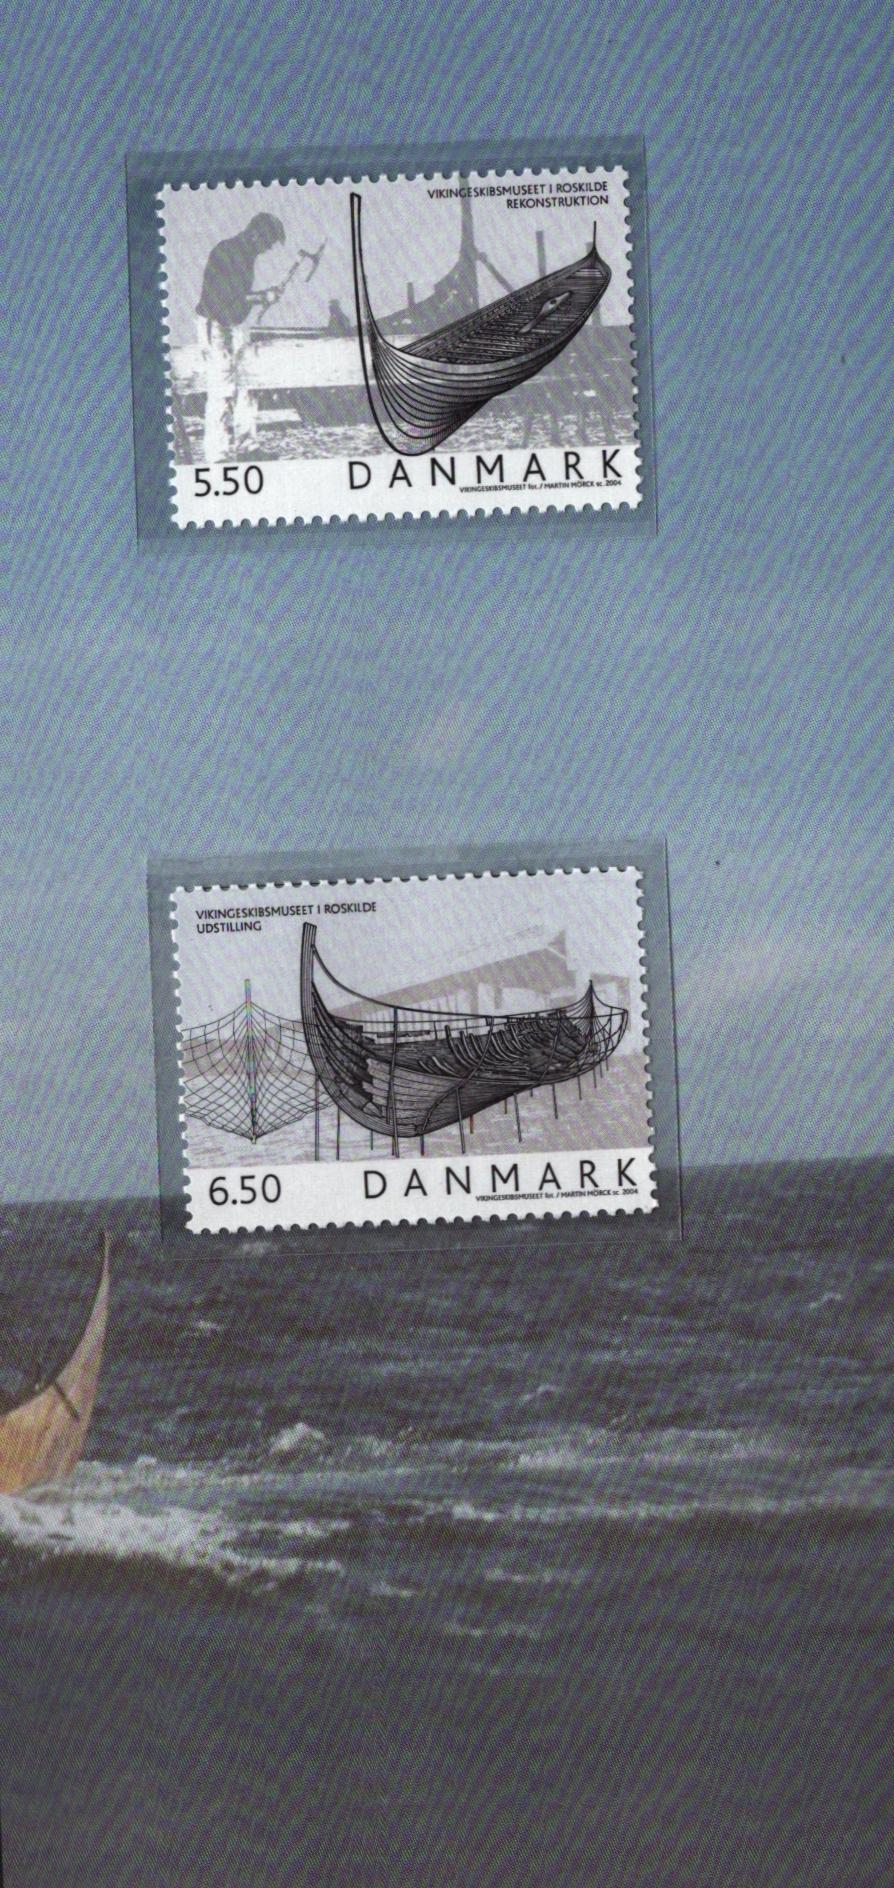 Danish 2004 stamp yearbook. Unmounted mint stamps. Good condition. We combine postage on multiple - Image 2 of 2